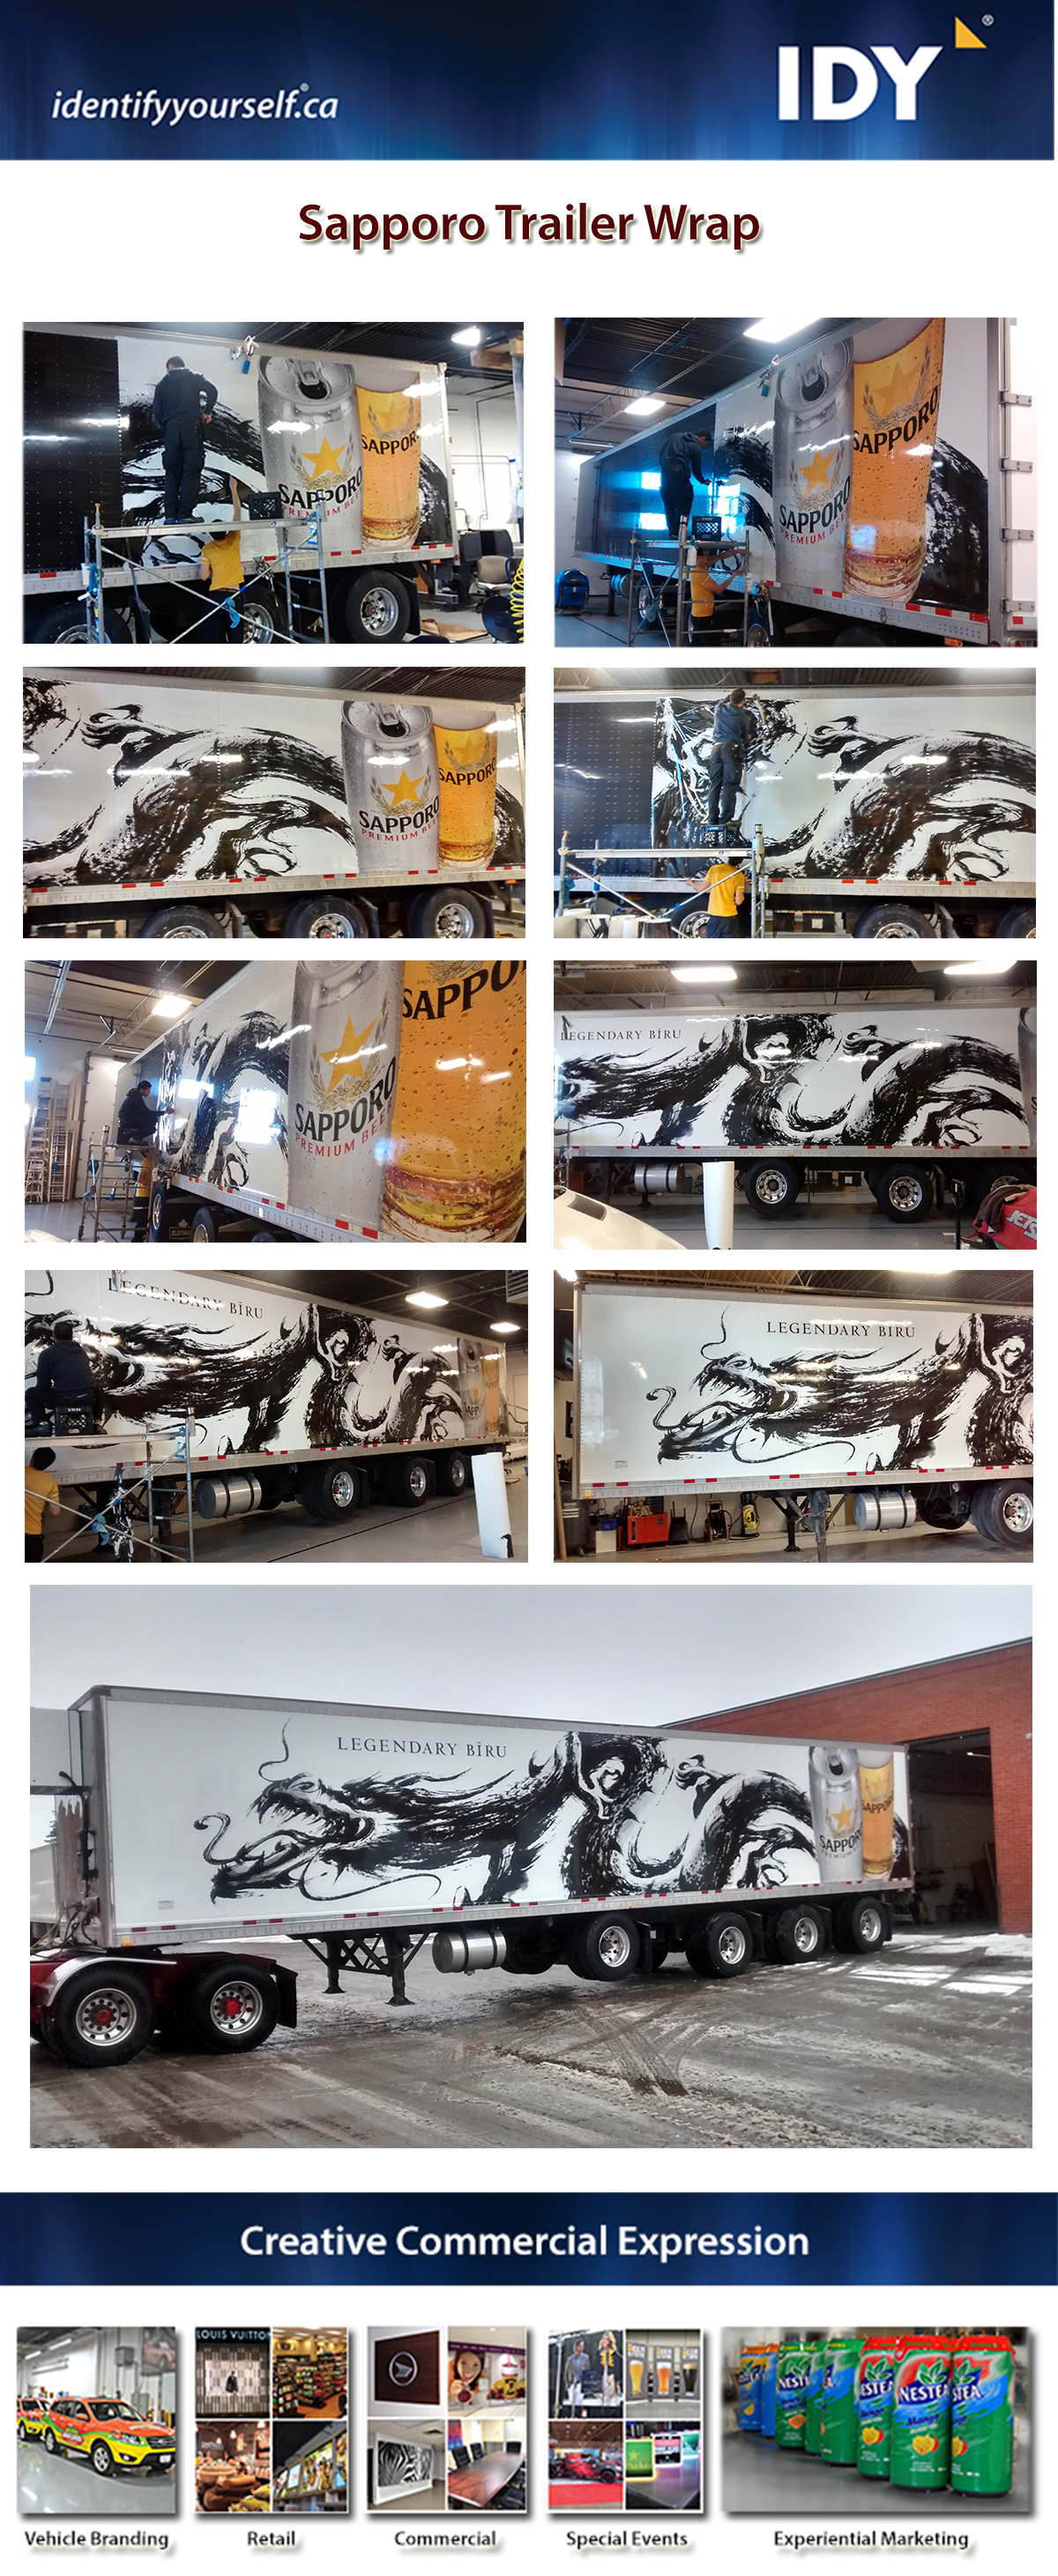 Trailer-Wrap_Sapporo_by-Identify-Yourself.ca